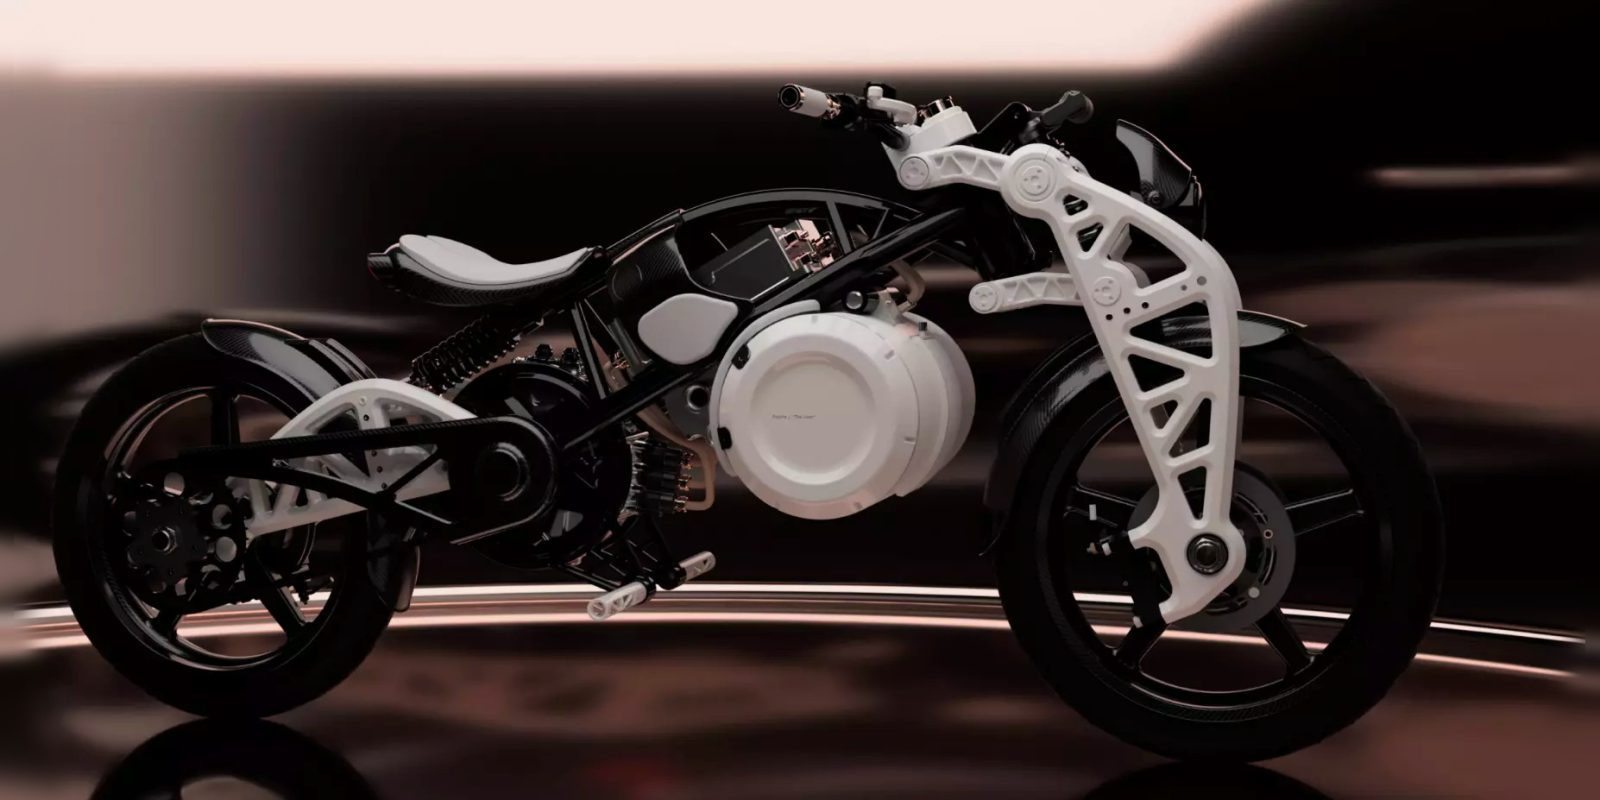 New $30k Curtiss Psyche electric motorcycle is an admitted 'shot at Harley'